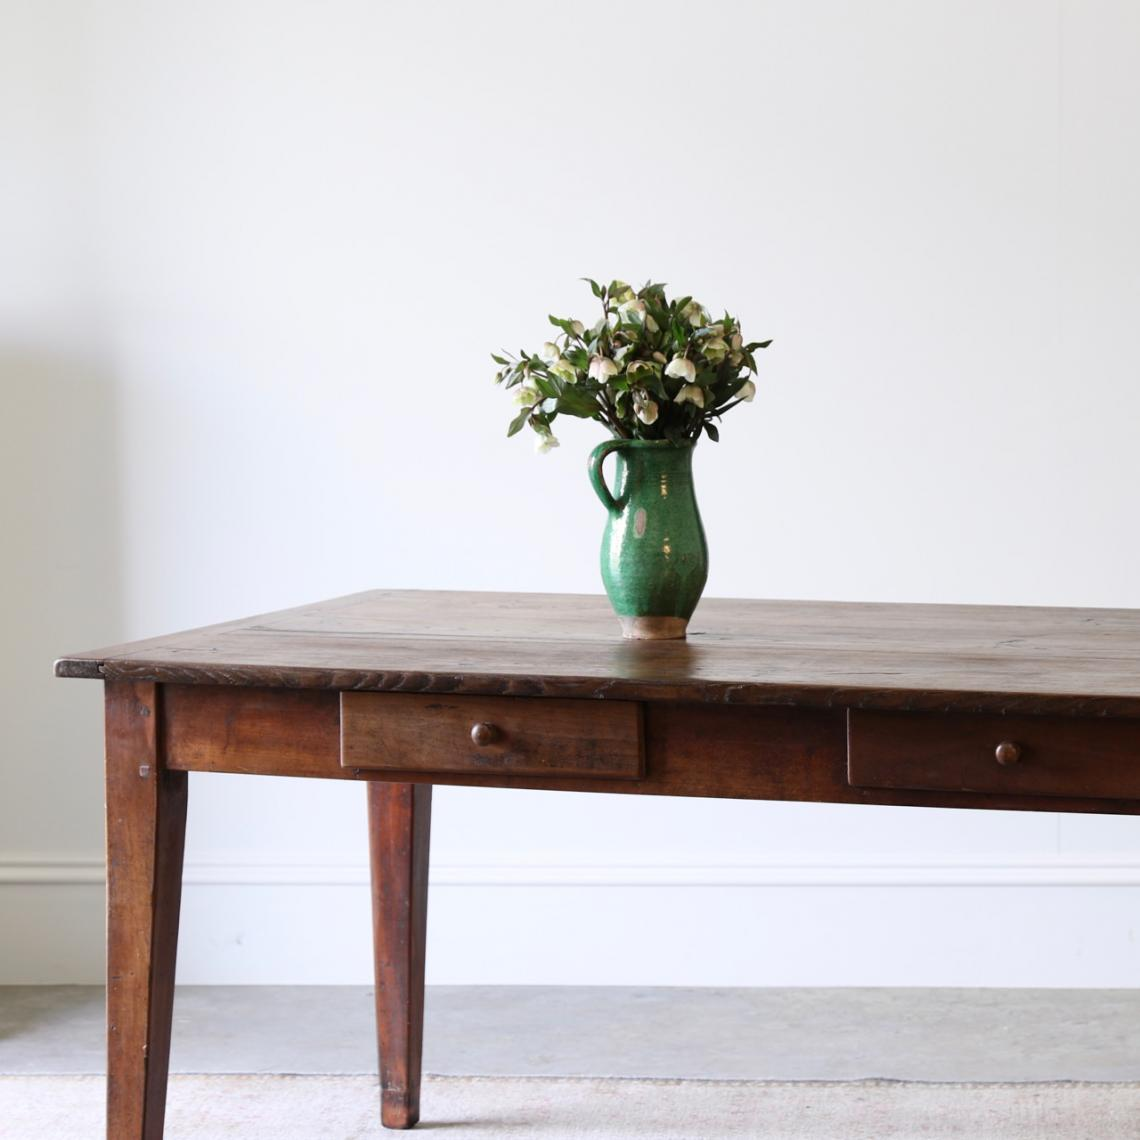 112-48 - Oak Dining Table